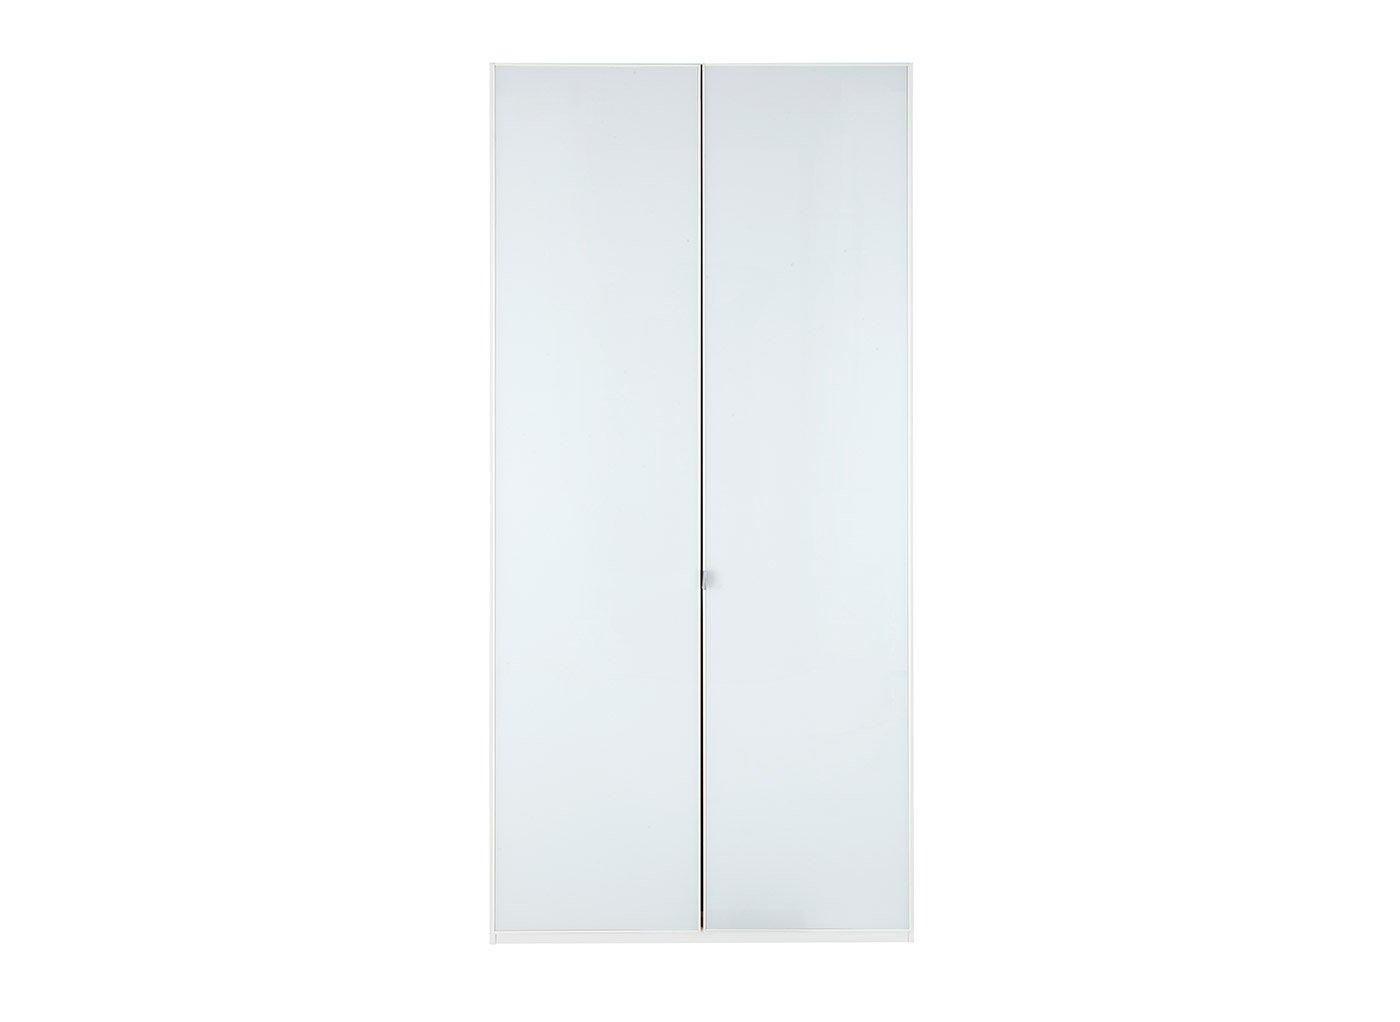 Memphis 2 Door Wardrobe – White (£599)